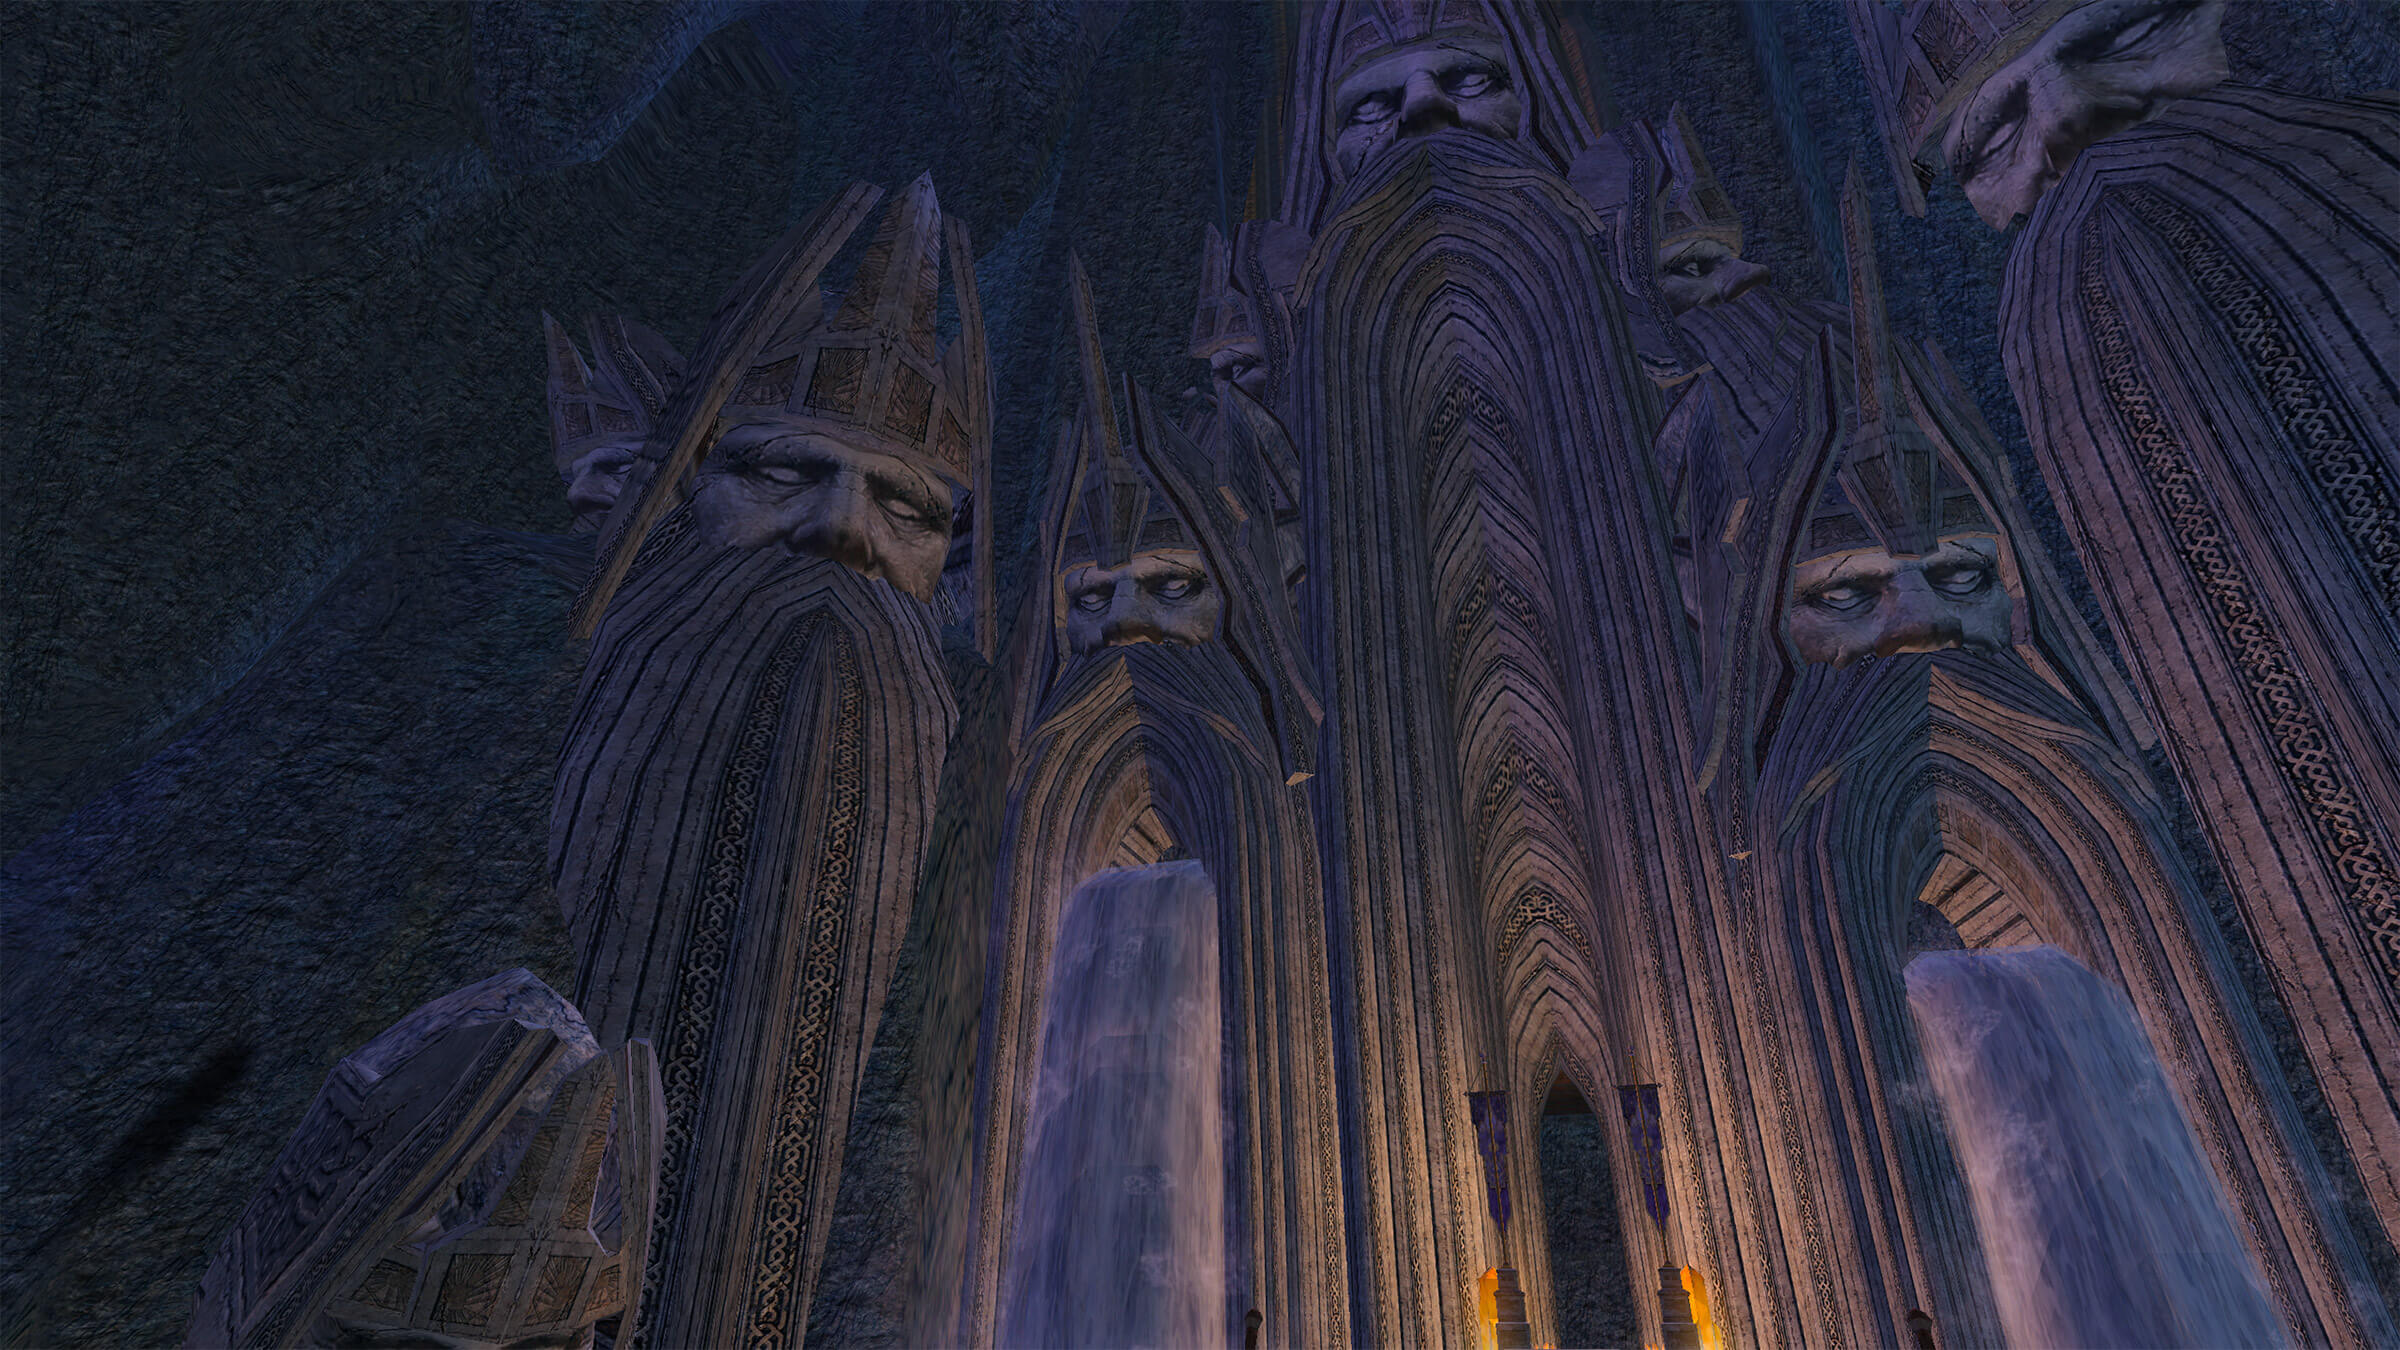 Moria on the Lord of the Rings Online / copyright: Standing Stone Games LLC